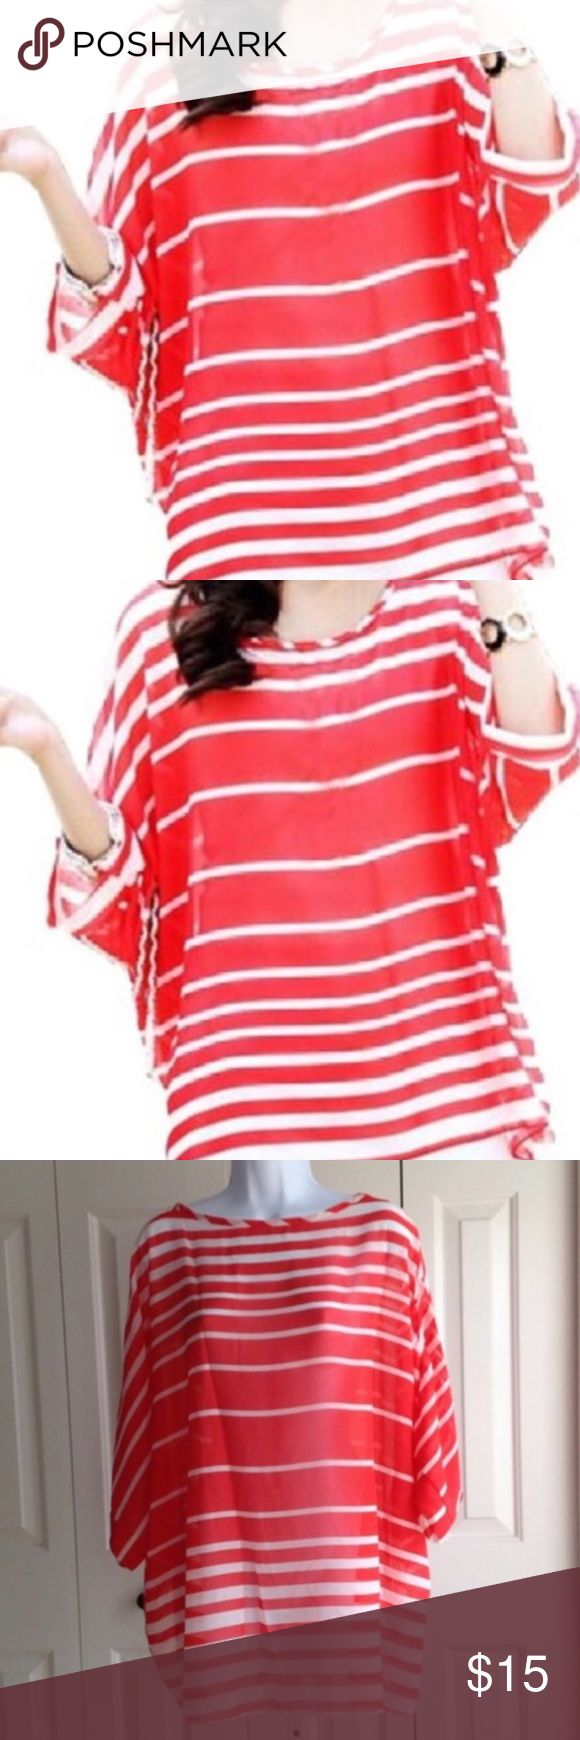 """RED /WHITE BATWING TOP Stylish!! Effortless for the warmer months or vacation. Pairs great with a tank top underneath and you're ready. Red and white stripes with batwing sleeves. Back Length 27"""". Front Length 25"""". Arm 6"""". OSFM. Chiffon. -No trades. EUC 51twenty Tops"""